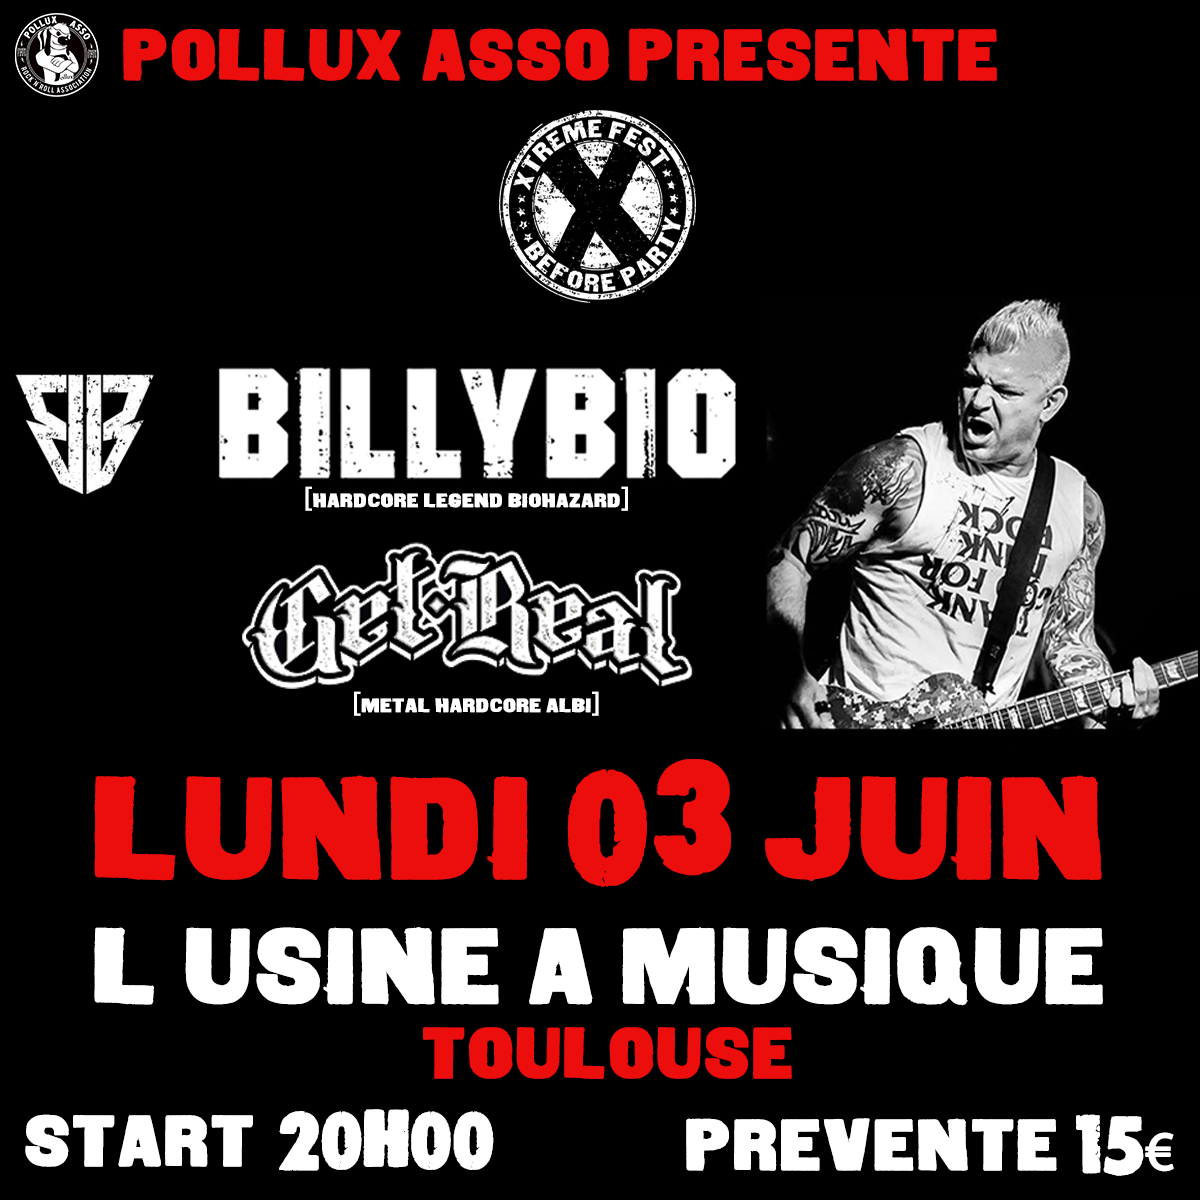 BillyBio (Biohazard) + Get Real / Xtreme fest before party Toulouse